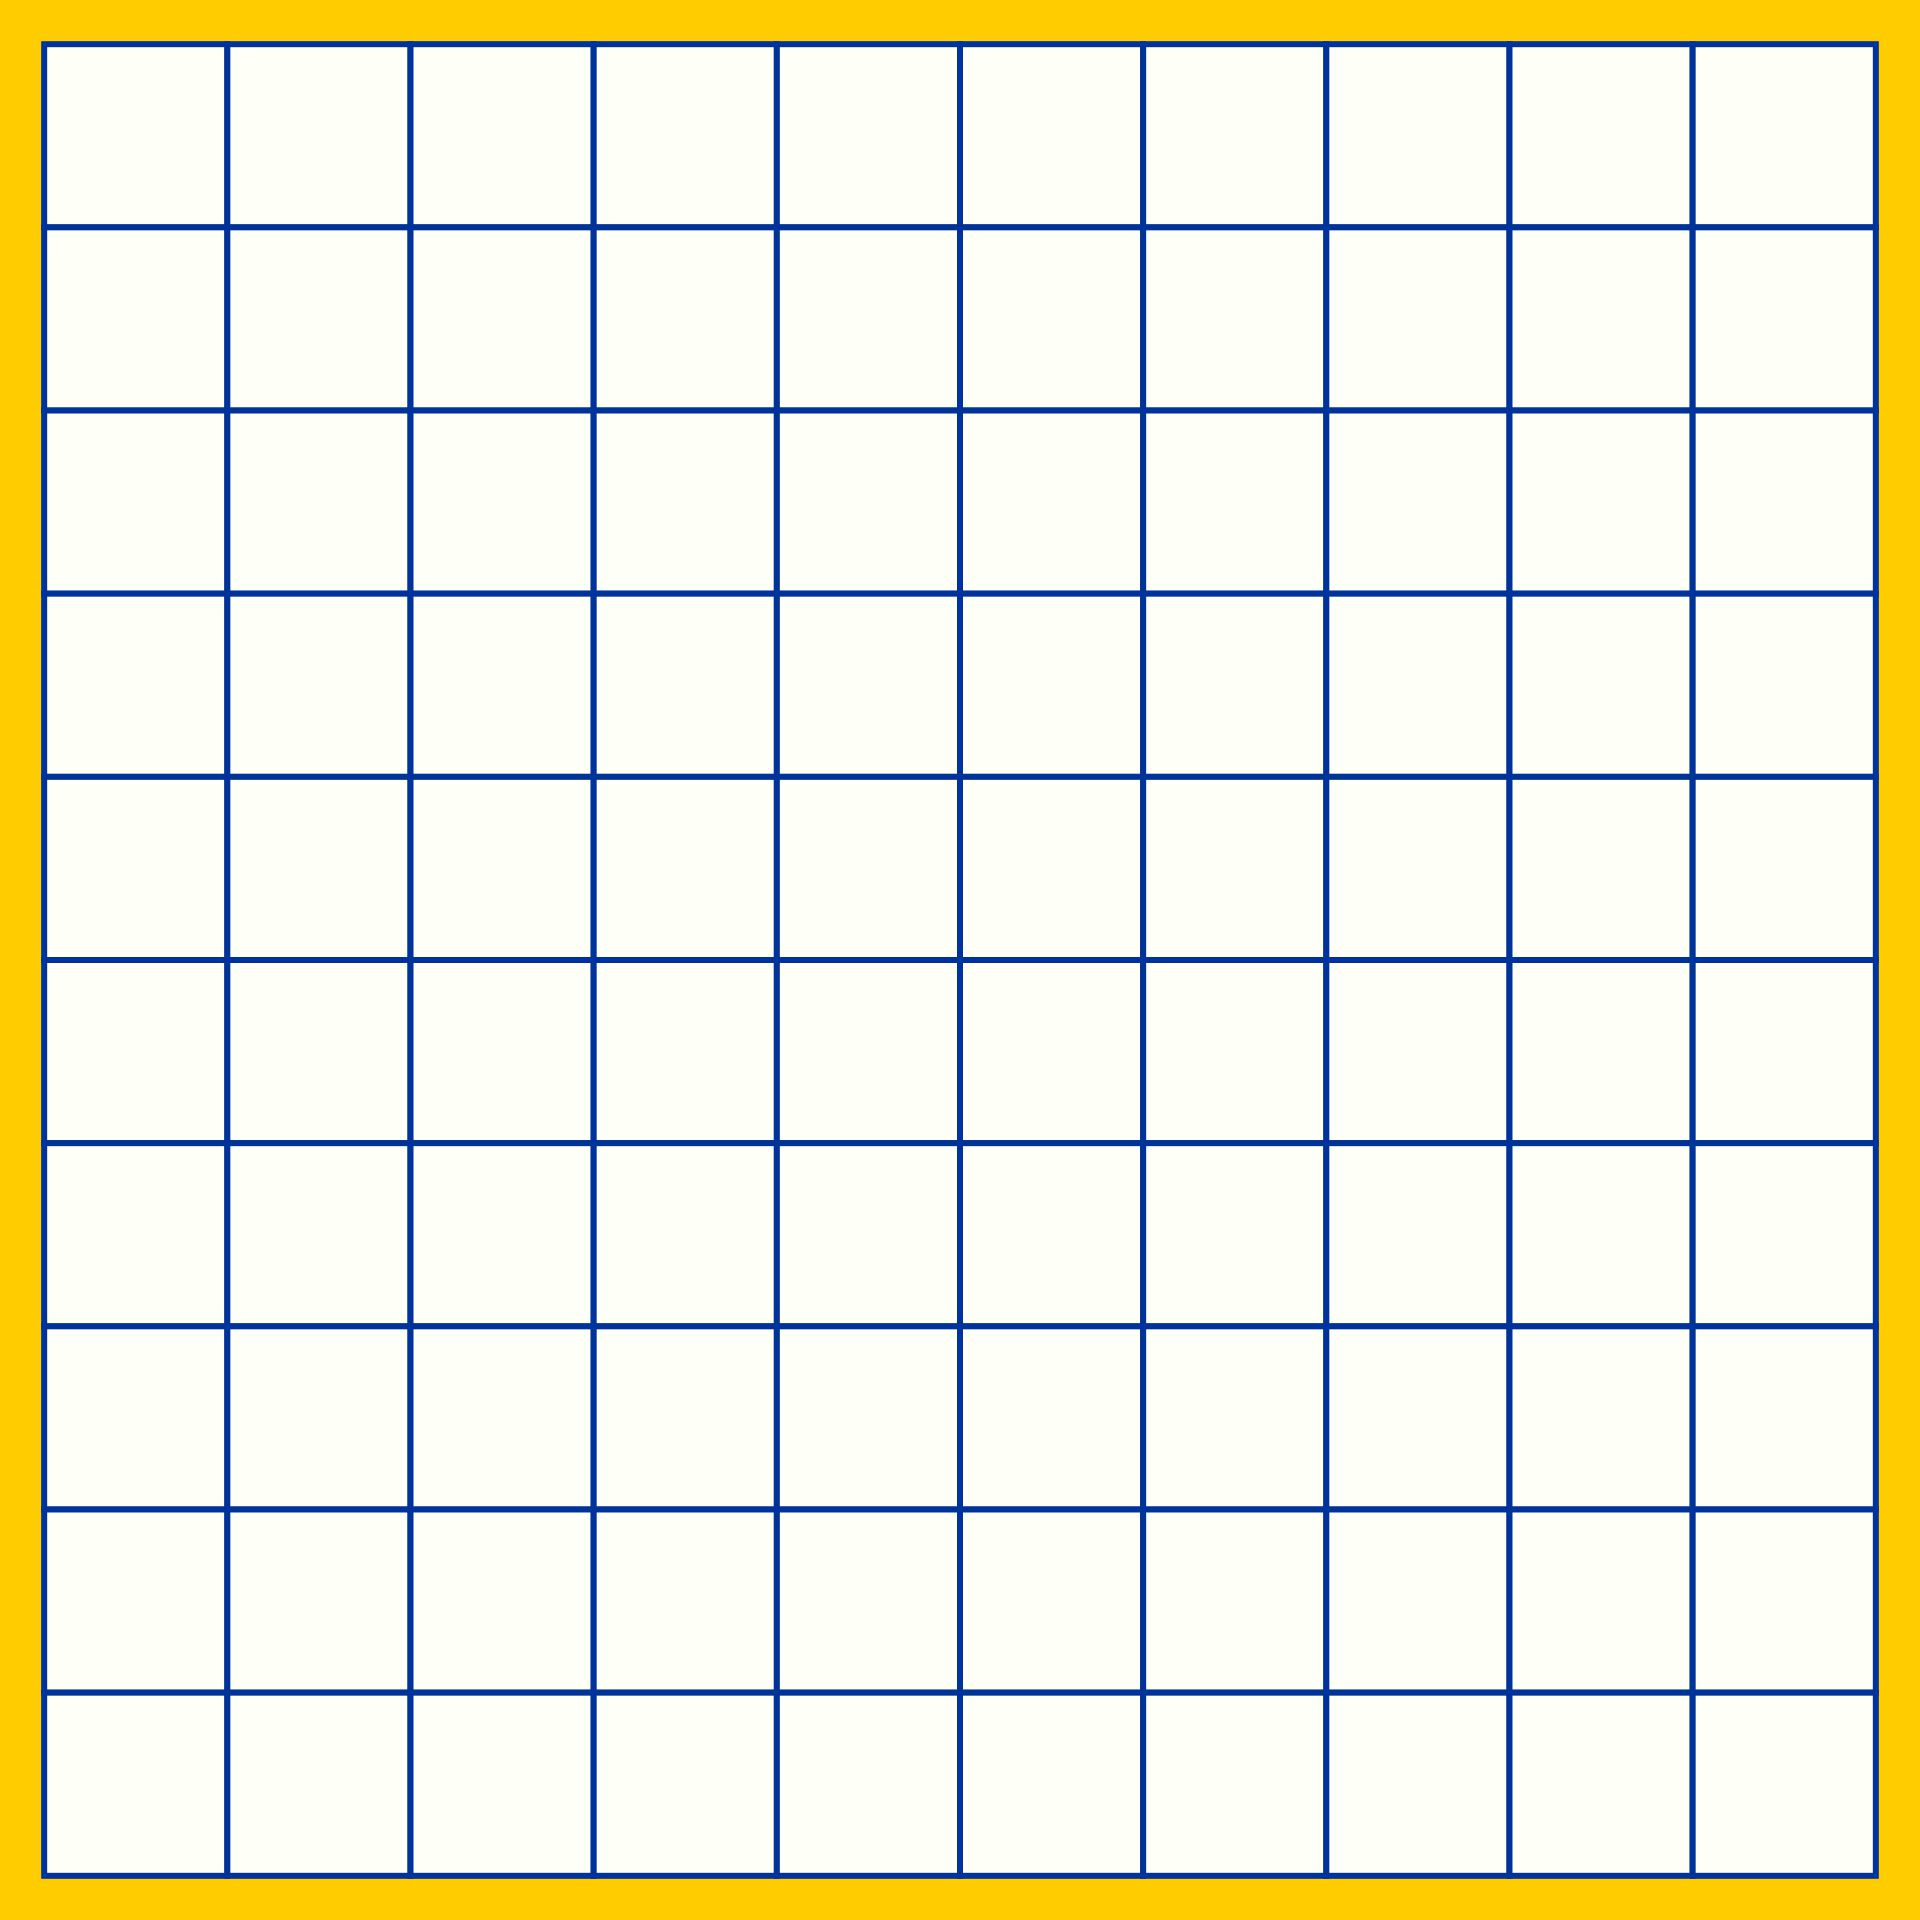 4 Images of 10 By 10 Grids Printable